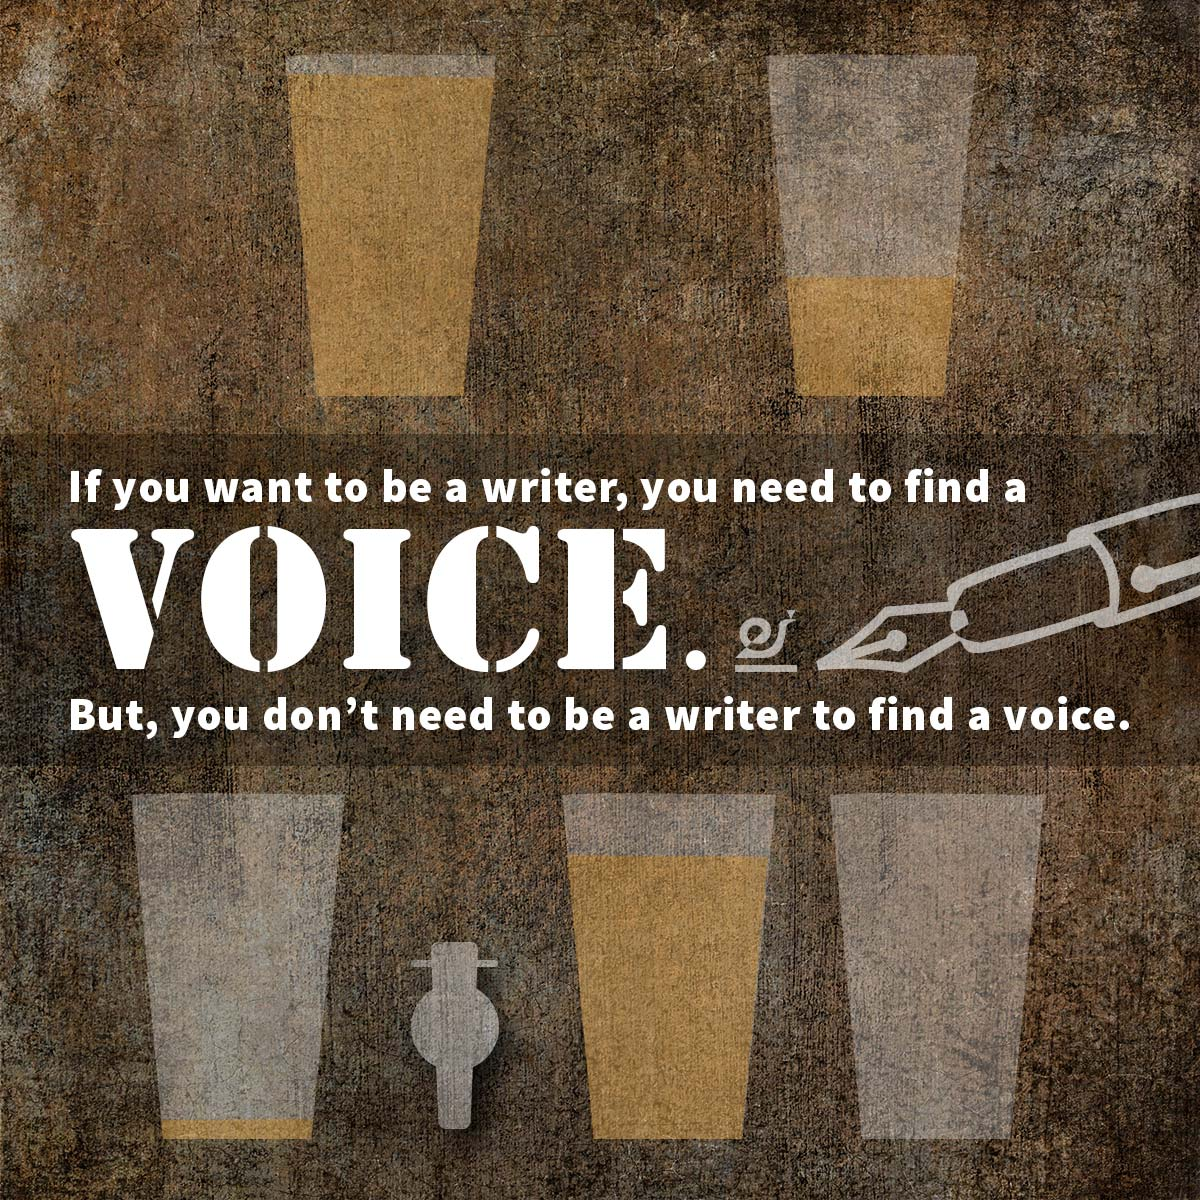 If you want to be a writer, you need to find a voice. But, you don't need to be a writer to find a voice.